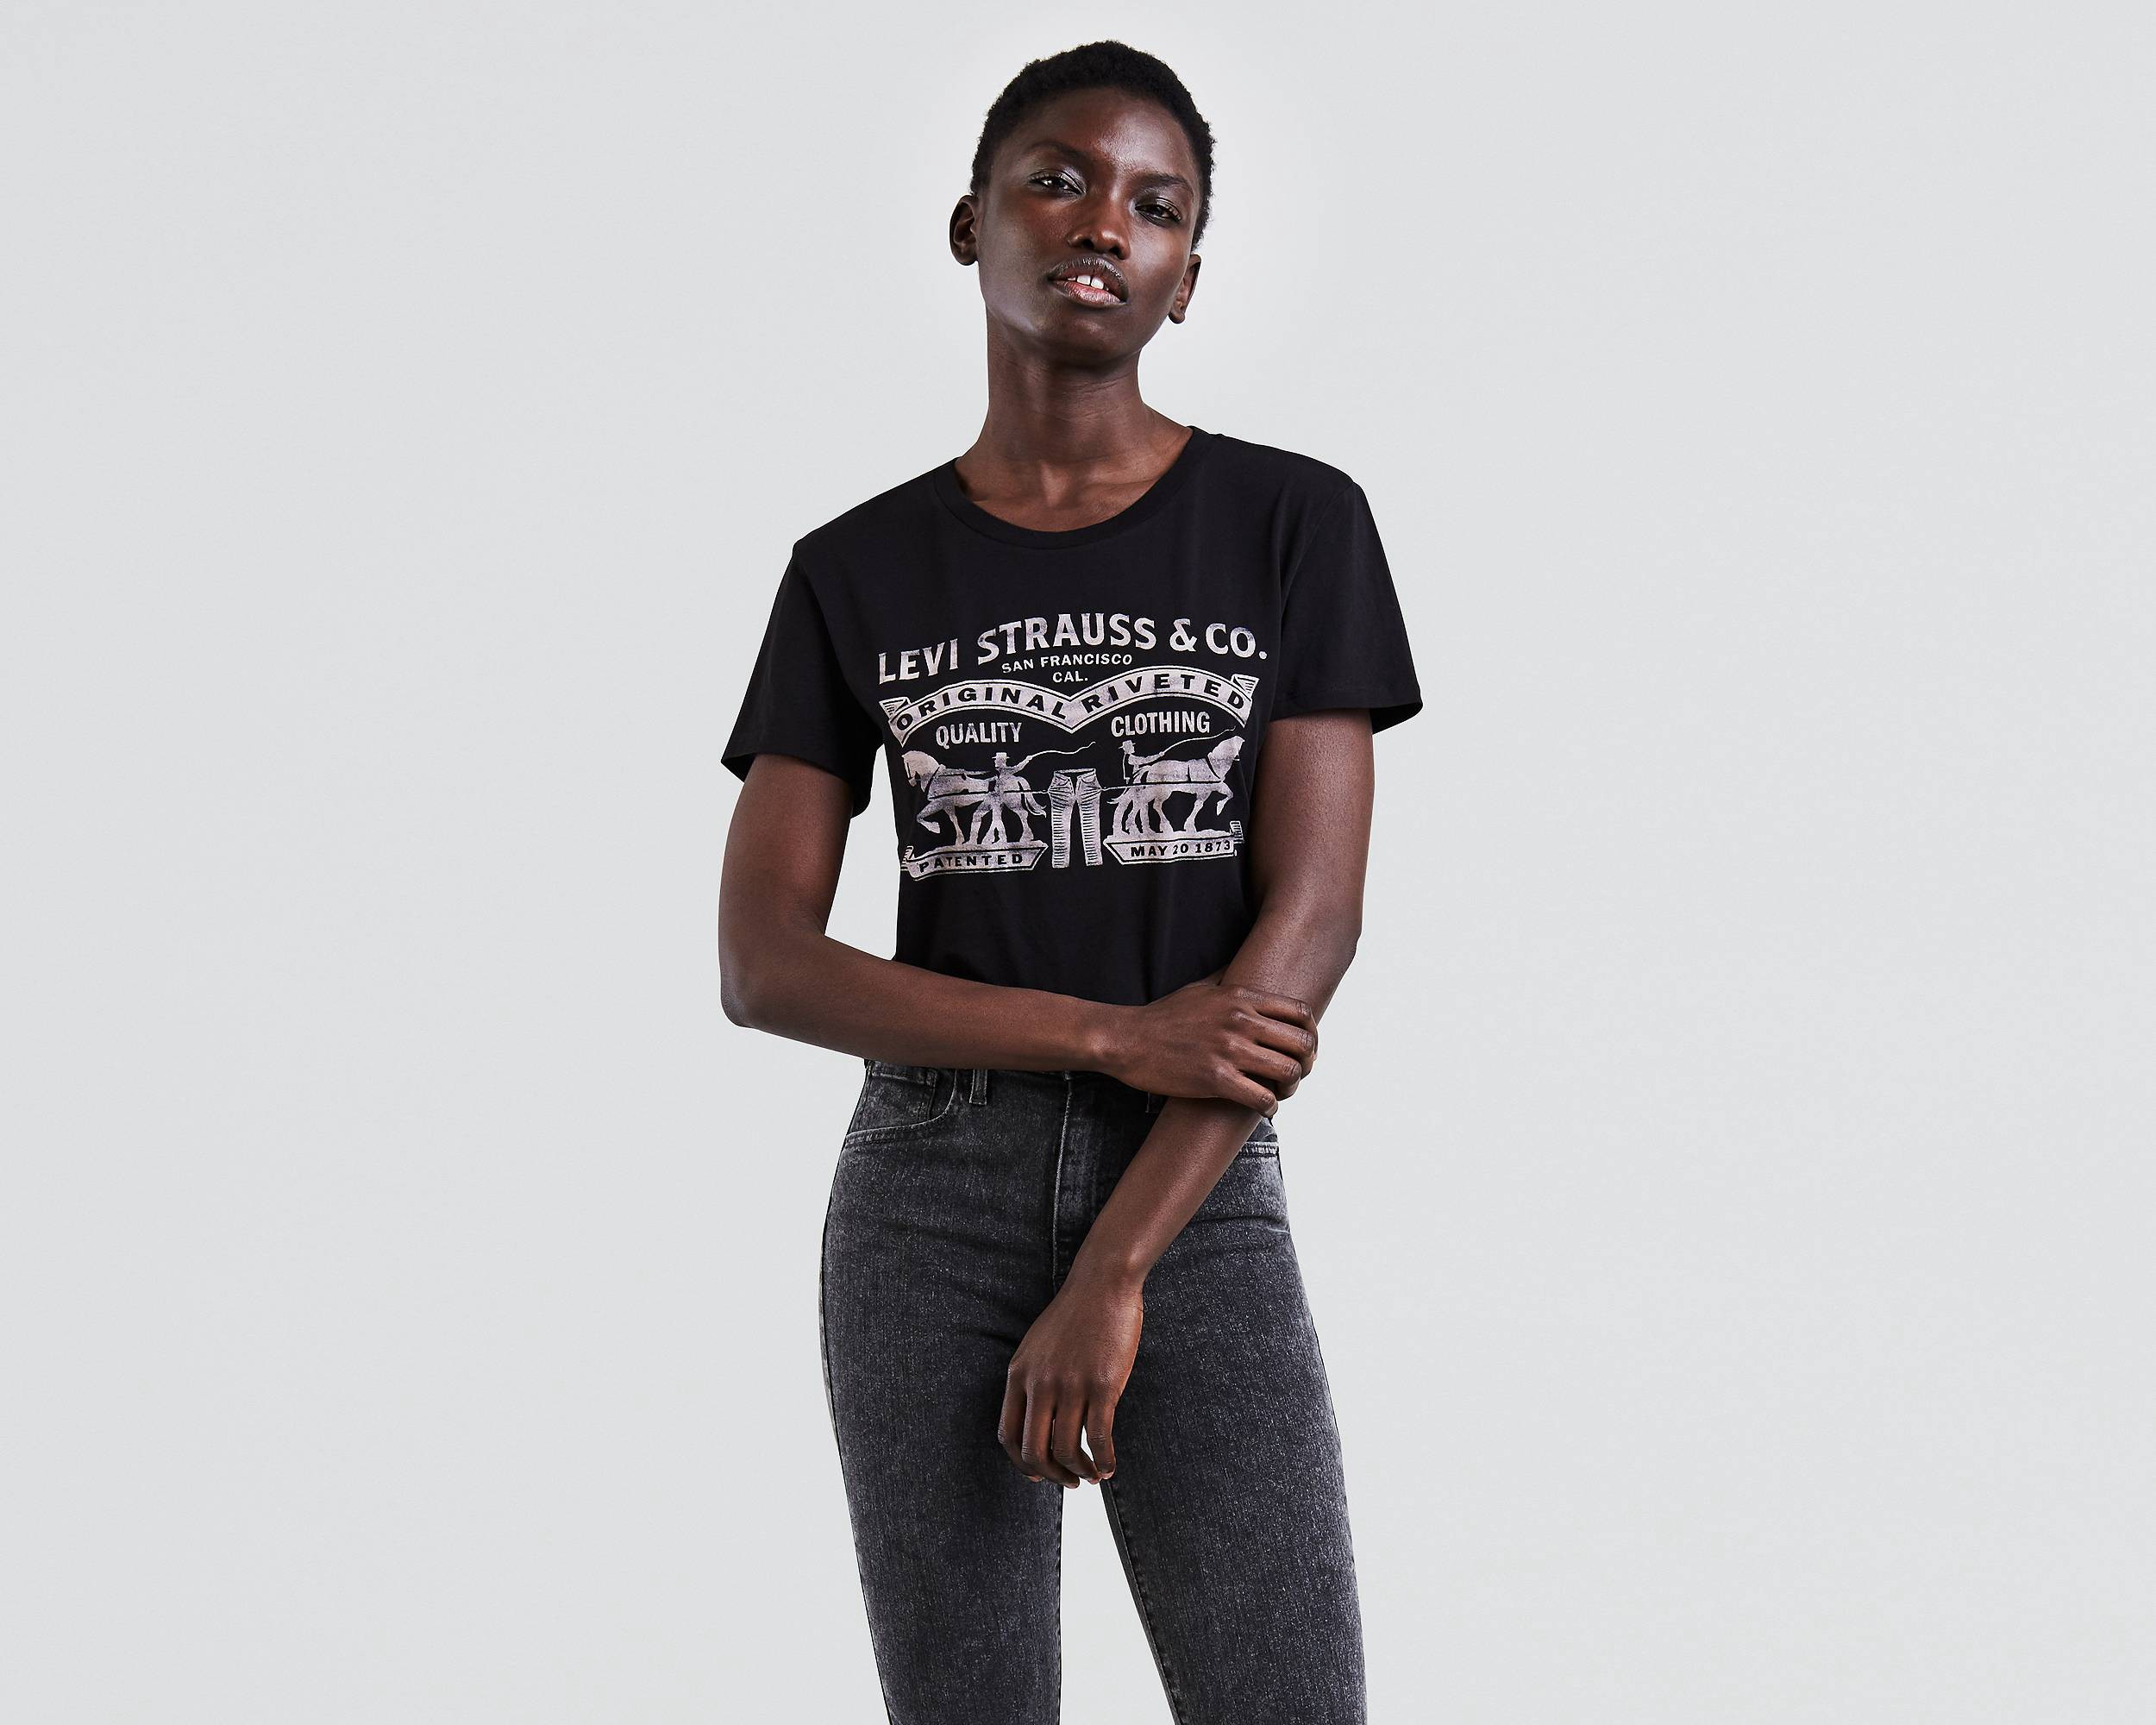 359dada72 Levi's Perfect Graphic Tee - Black 2 Horse XL   Products   Graphic ...